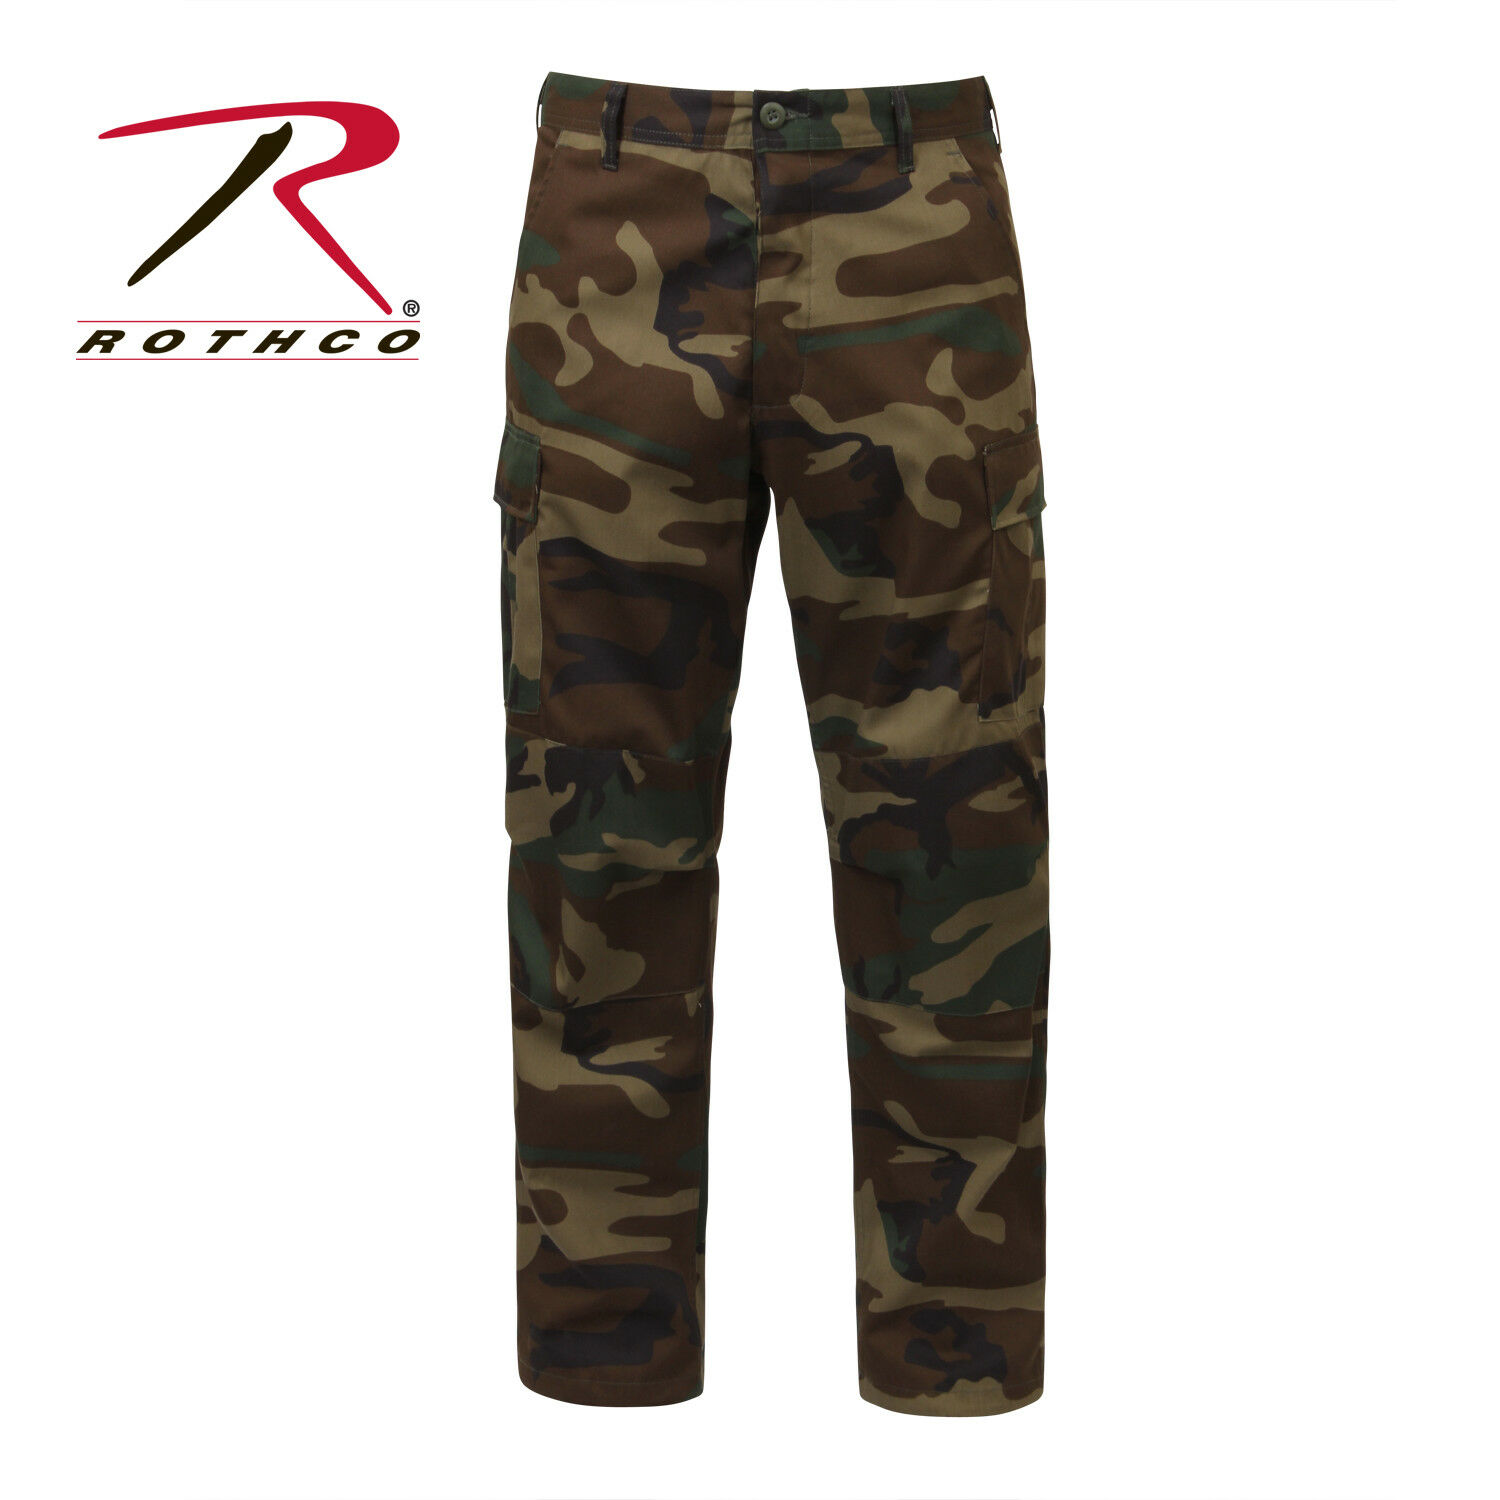 redhco Tactical BDU Pants Woodland  Camo  authentic quality